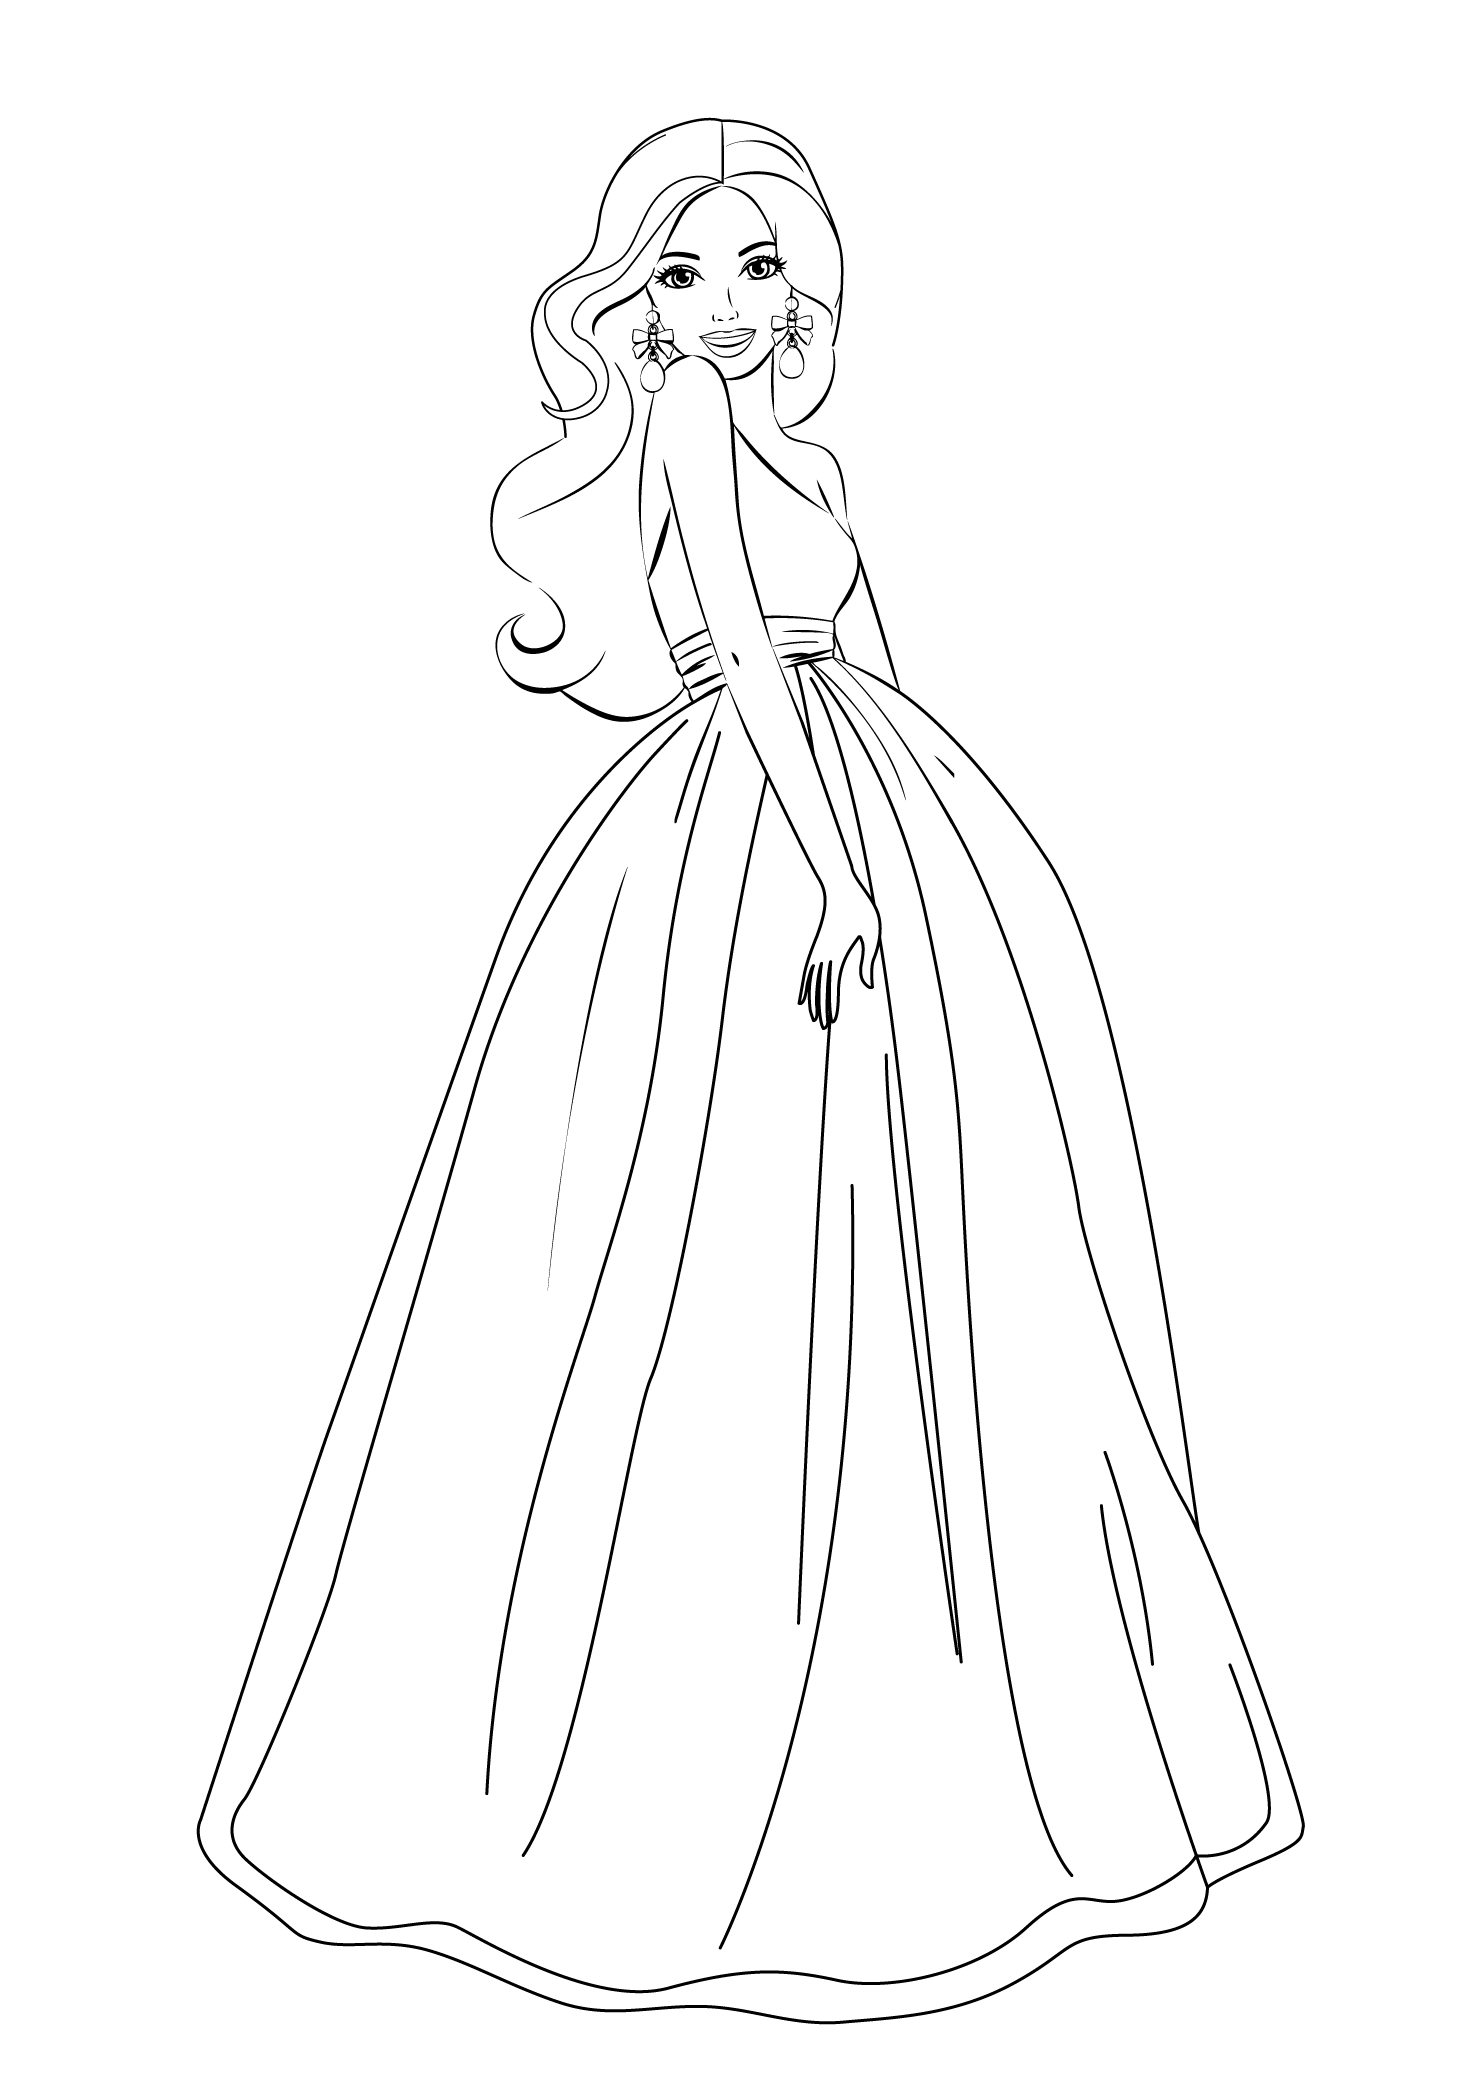 barbie girls coloring pages - photo#8